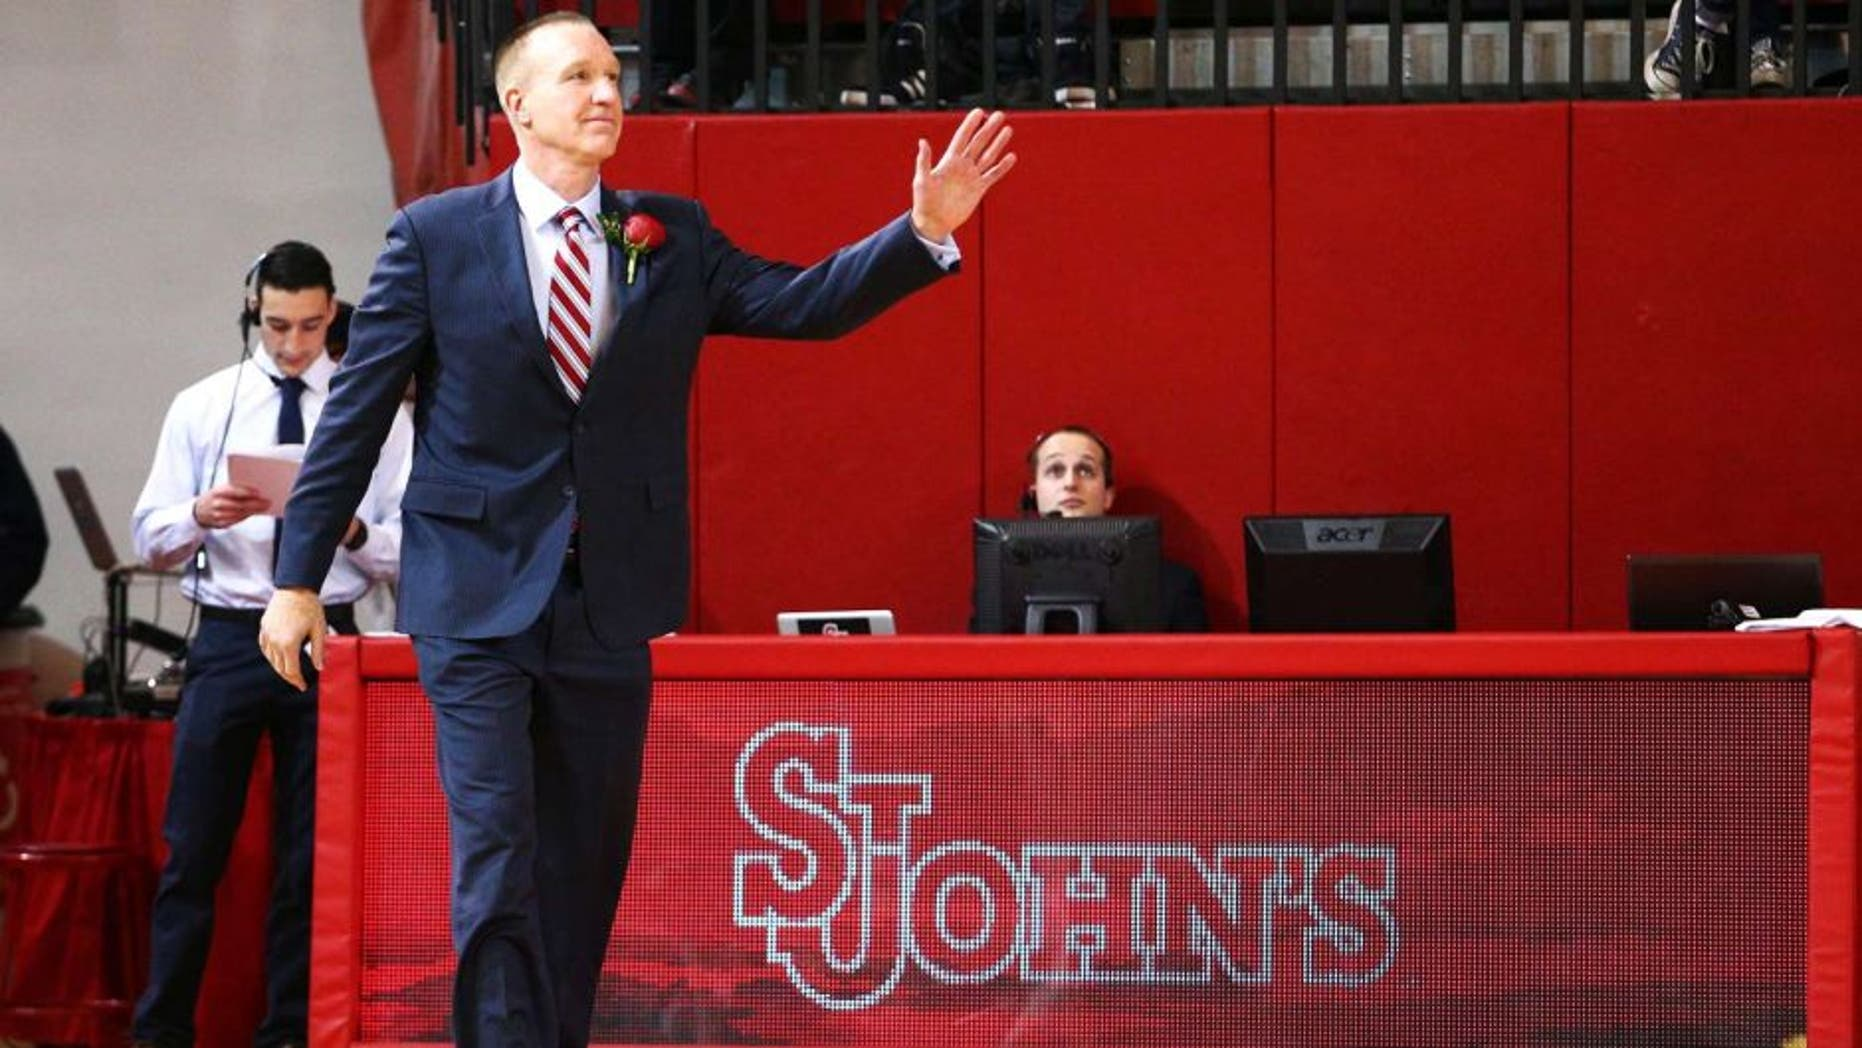 Feb 21, 2015; Jamaica, NY, USA; St. John's Red Storm alum Chris Mullin is inducted into the St. John's hall of fame during halftime against the Seton Hall Pirates at Carnesecca Arena. Mandatory Credit: Brad Penner-USA TODAY Sports